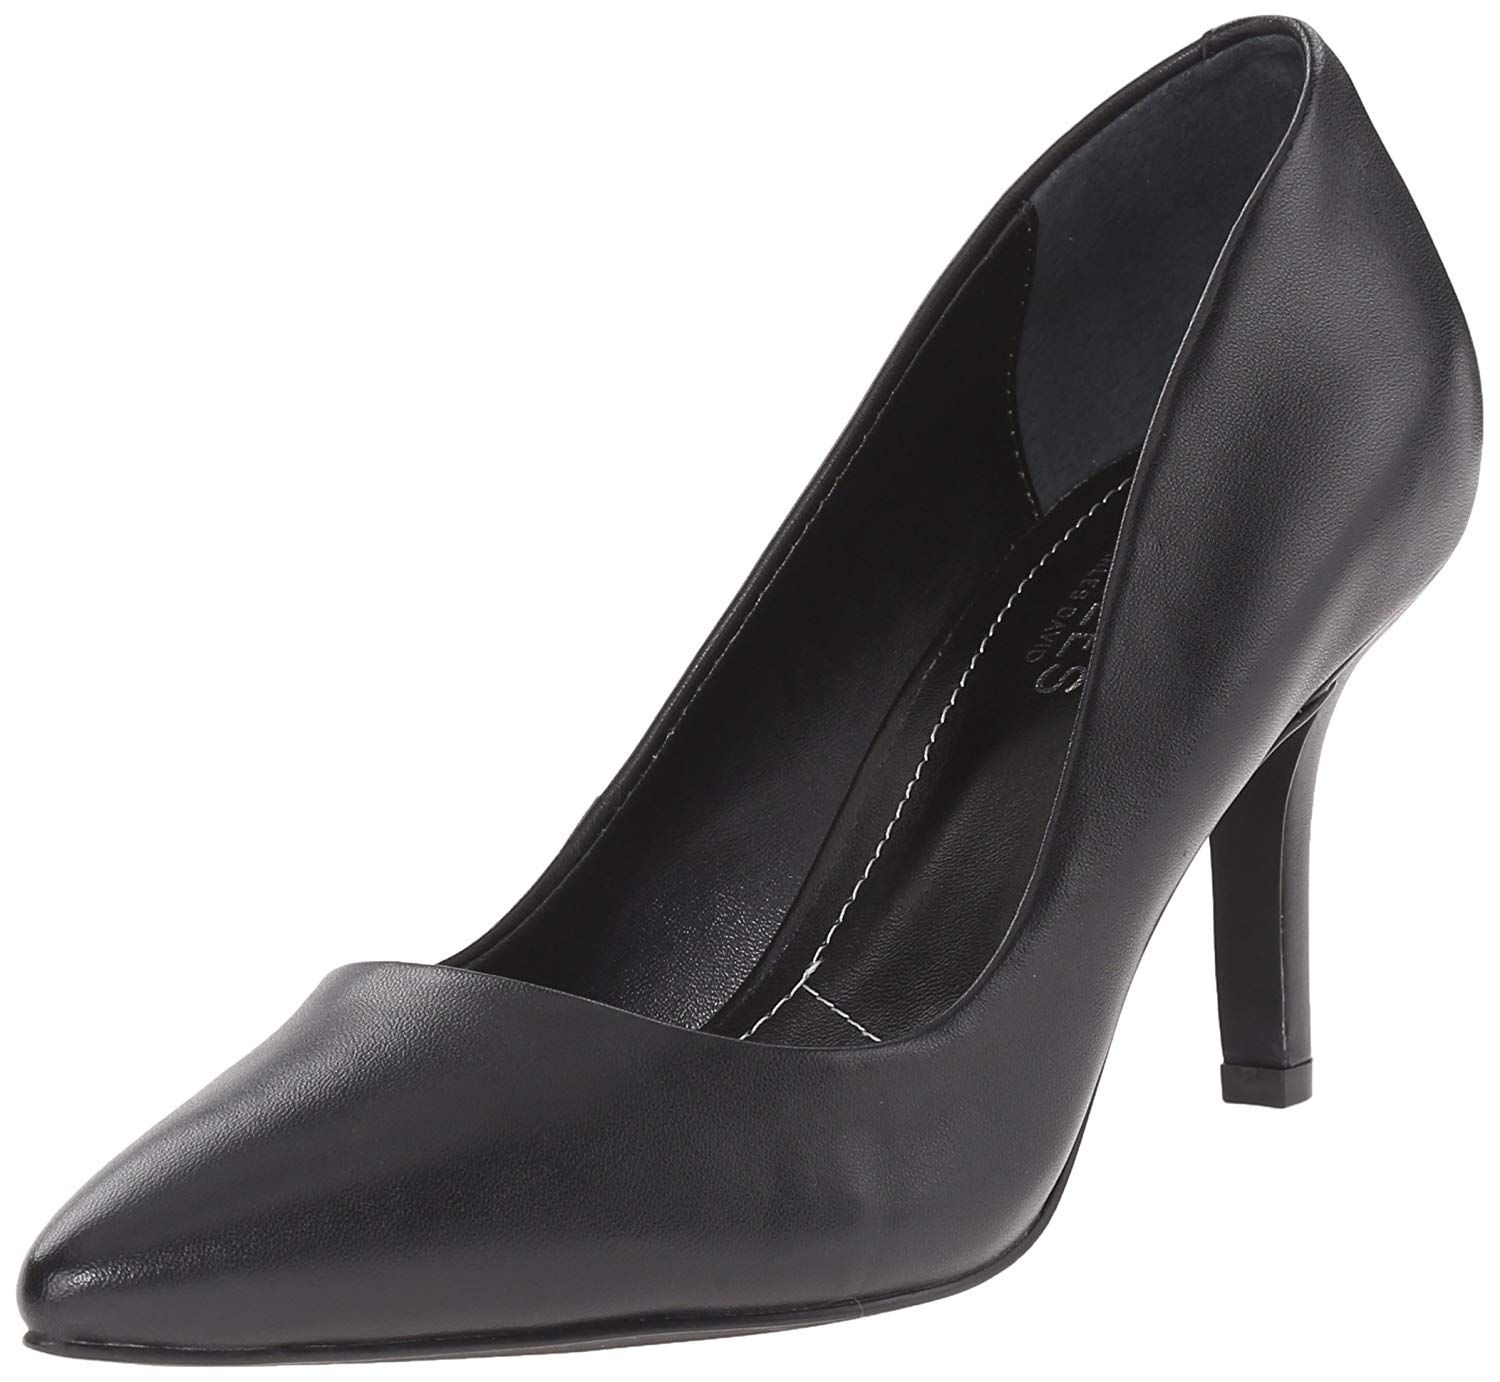 Charles By Charles David Women S Sasha Dress Pump Soft Leather Upper Launched In January 2004 The Charles By Charles David Line Pumps Pump Dress Sasha Dress